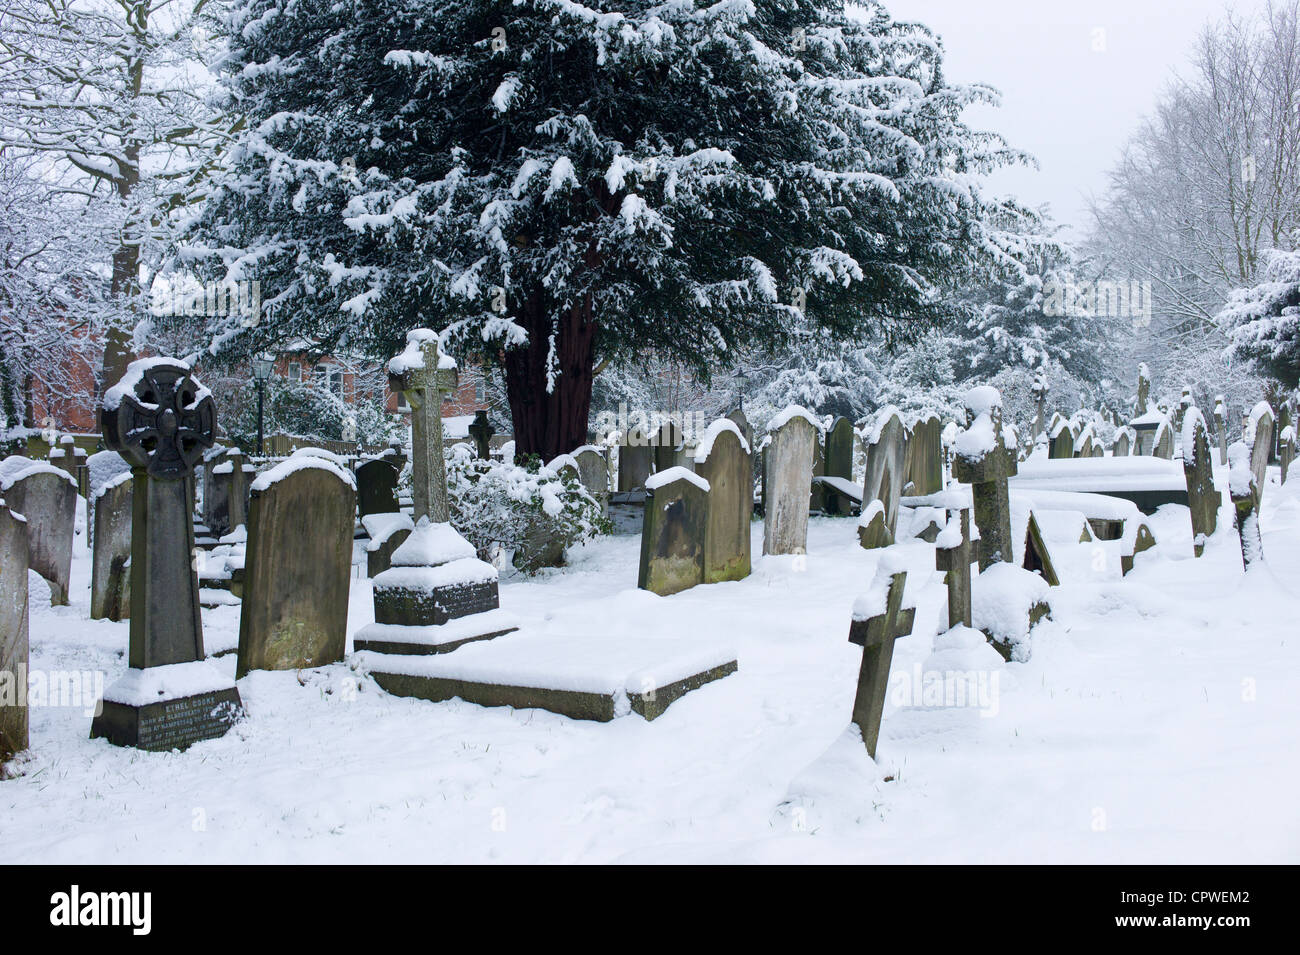 Snow-covered gravestones in Hampstead Parish Graveyard in Church Row and Holly Place in Hampstead, North London, - Stock Image